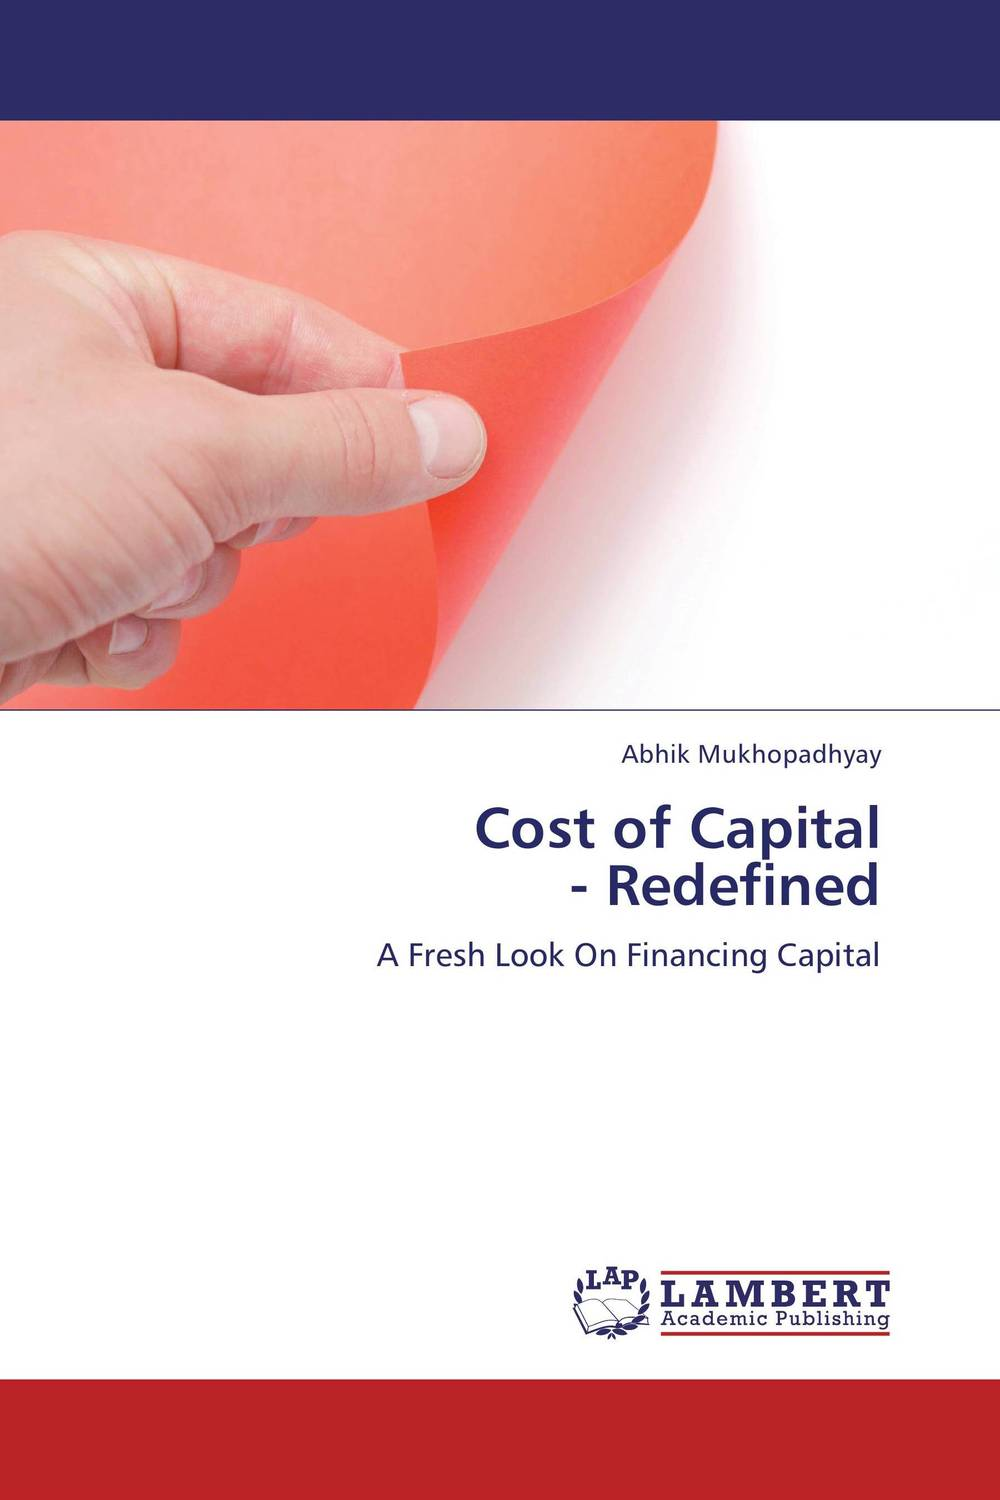 Cost of Capital - Redefined the cost of caring